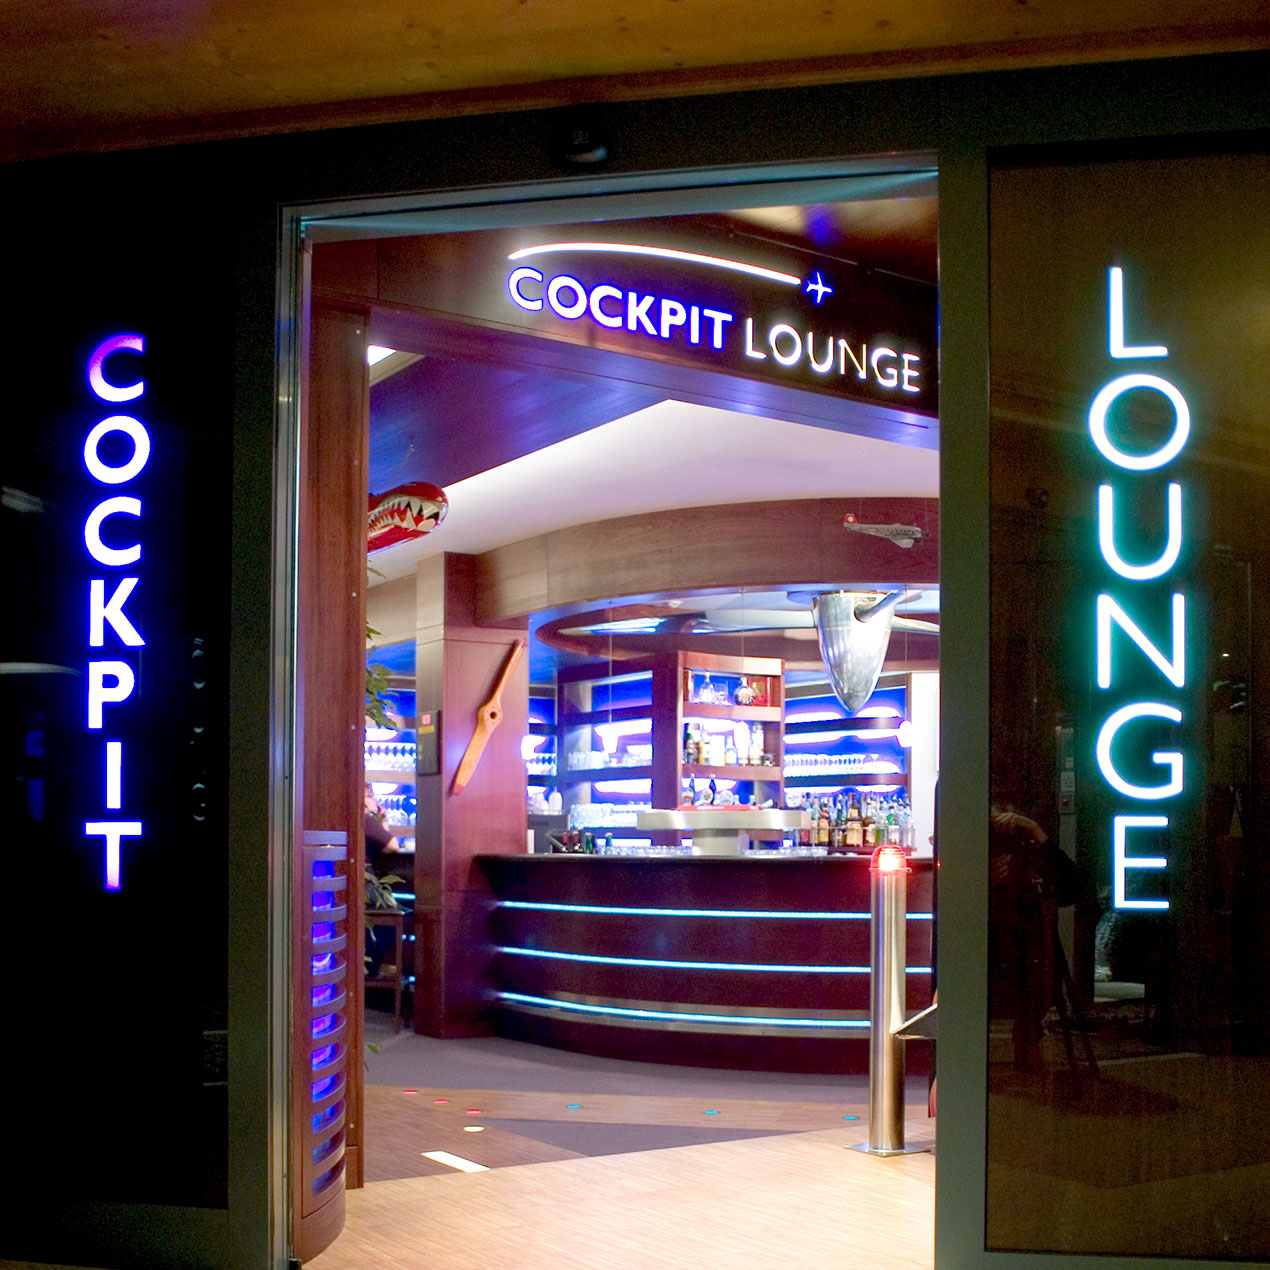 Entrance to the Cockpit Lounge